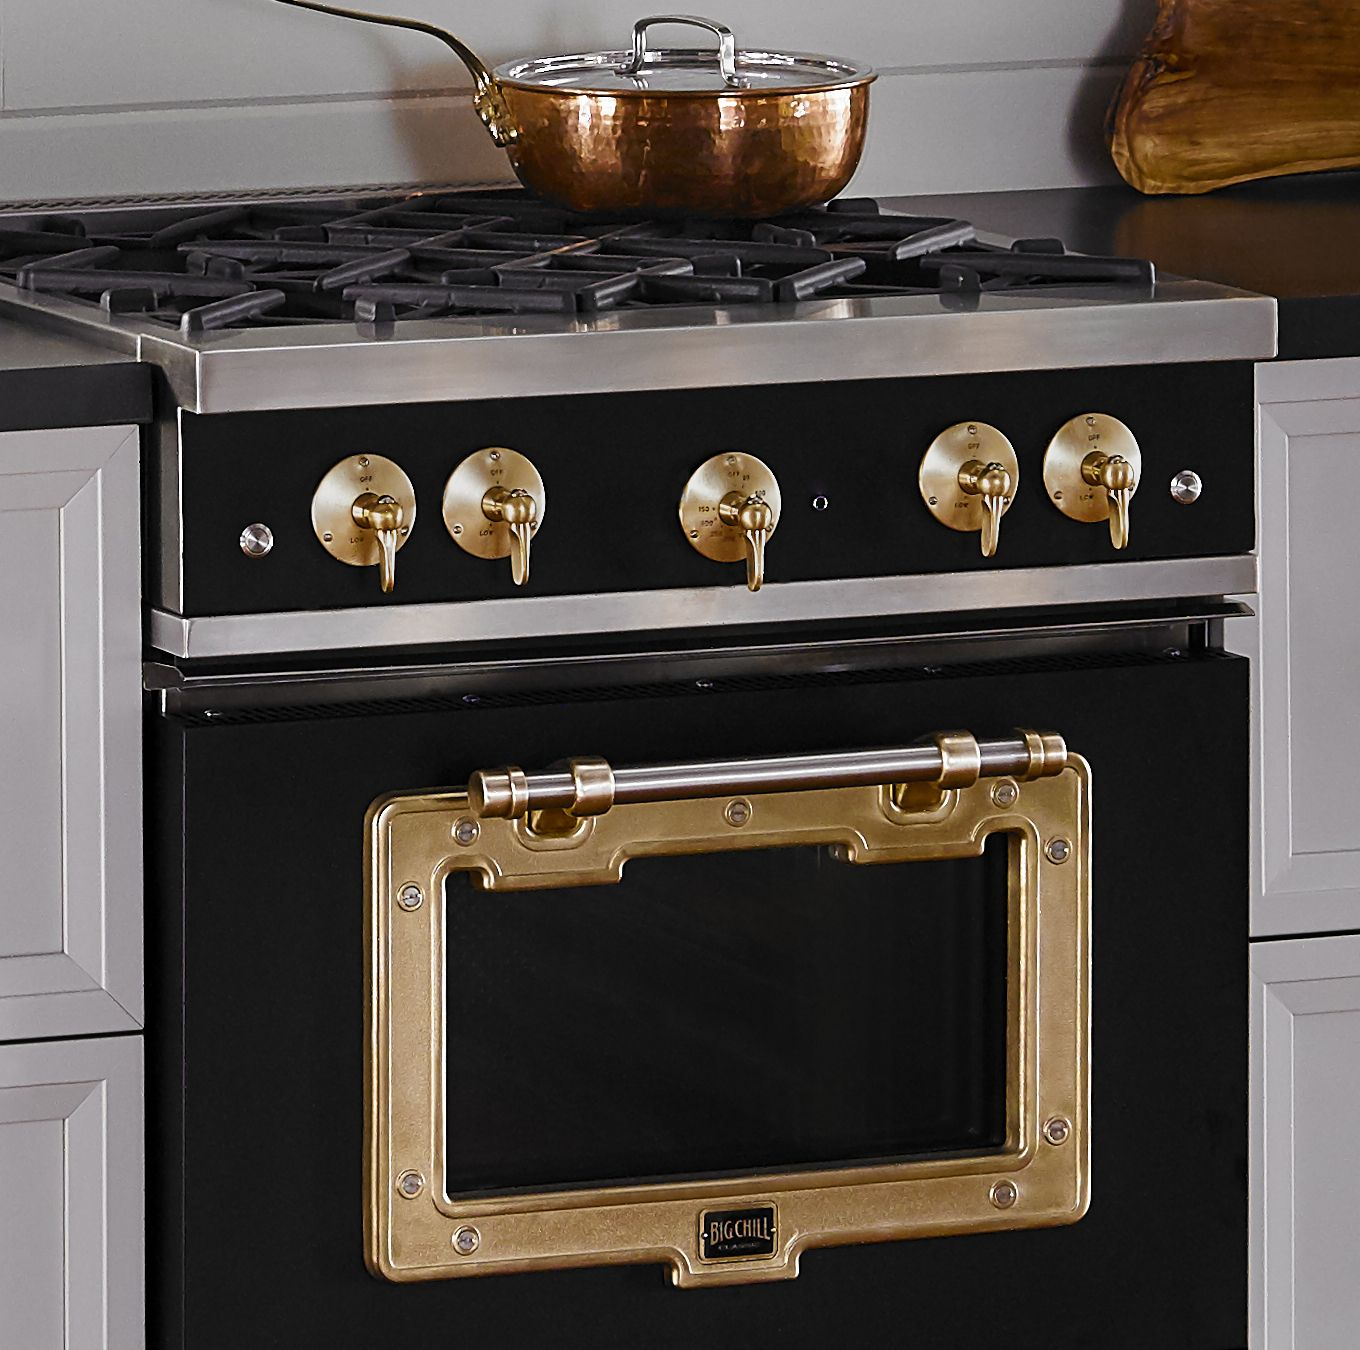 Big W Kitchen Appliances 1900 Series Classic Oven Kitchen Stoves Ovens Hood